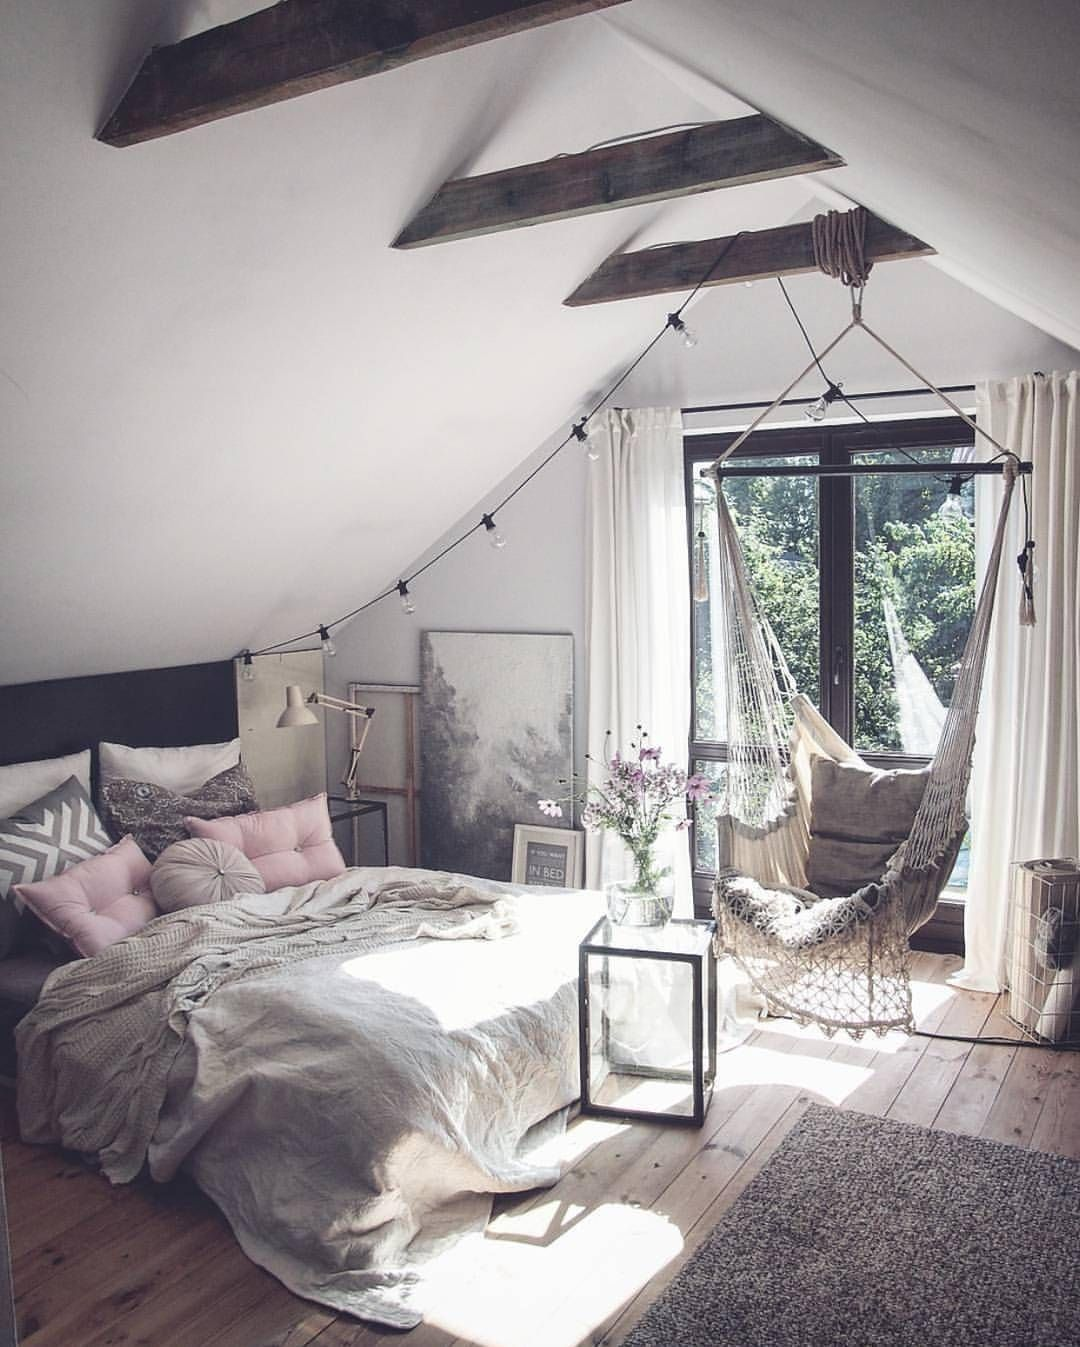 Blush and grey style bedroom.    See this Instagram photo by @interior4all • 9,969 likes